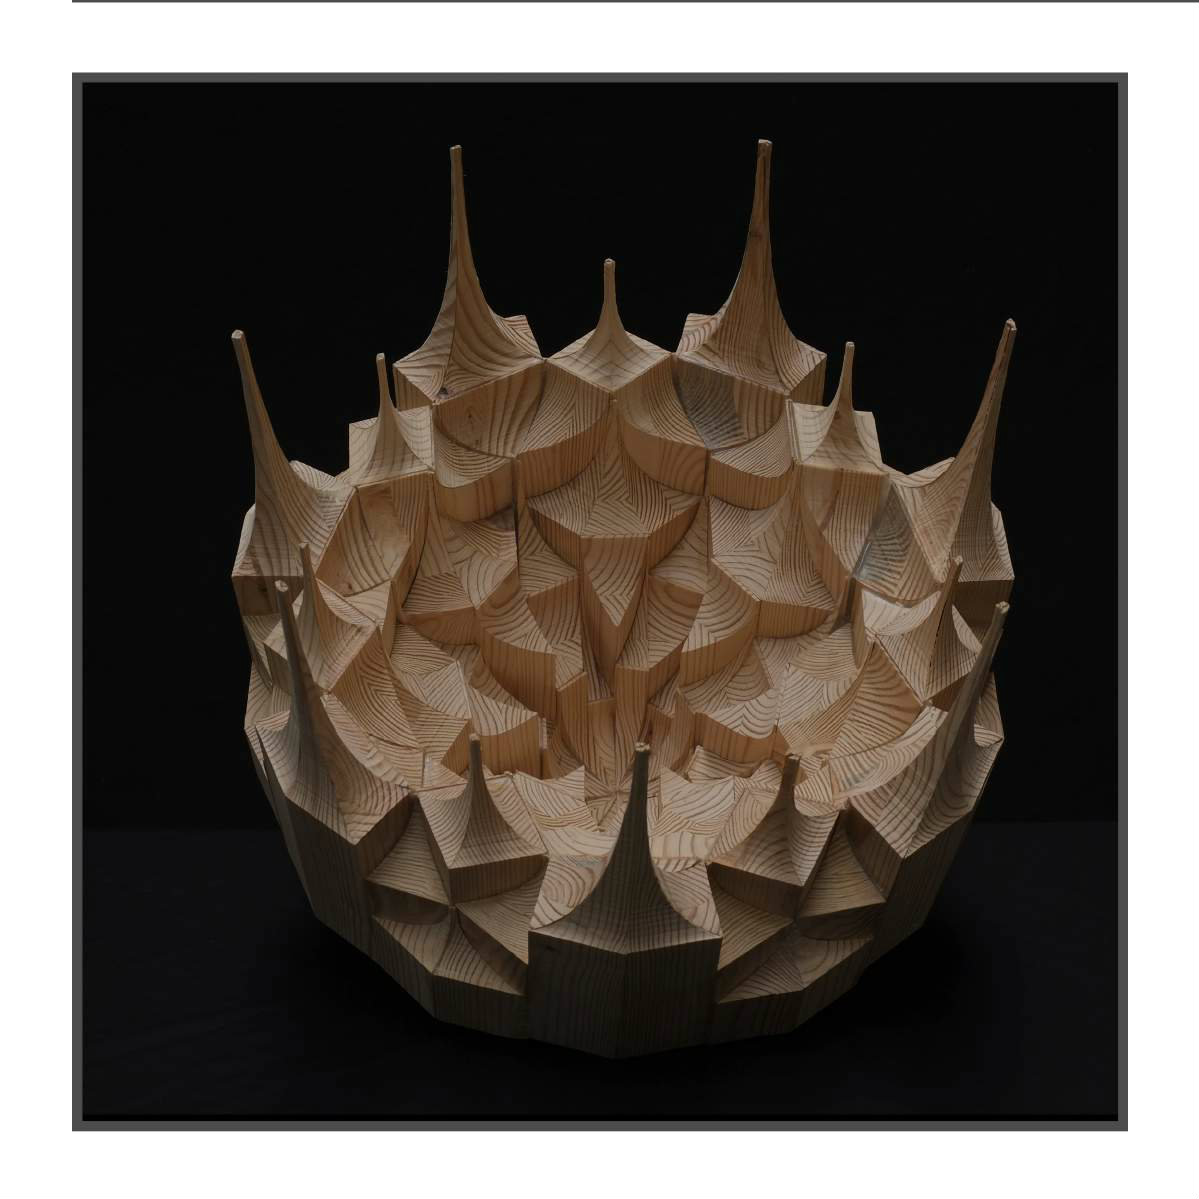 wooden sculpture with spikes